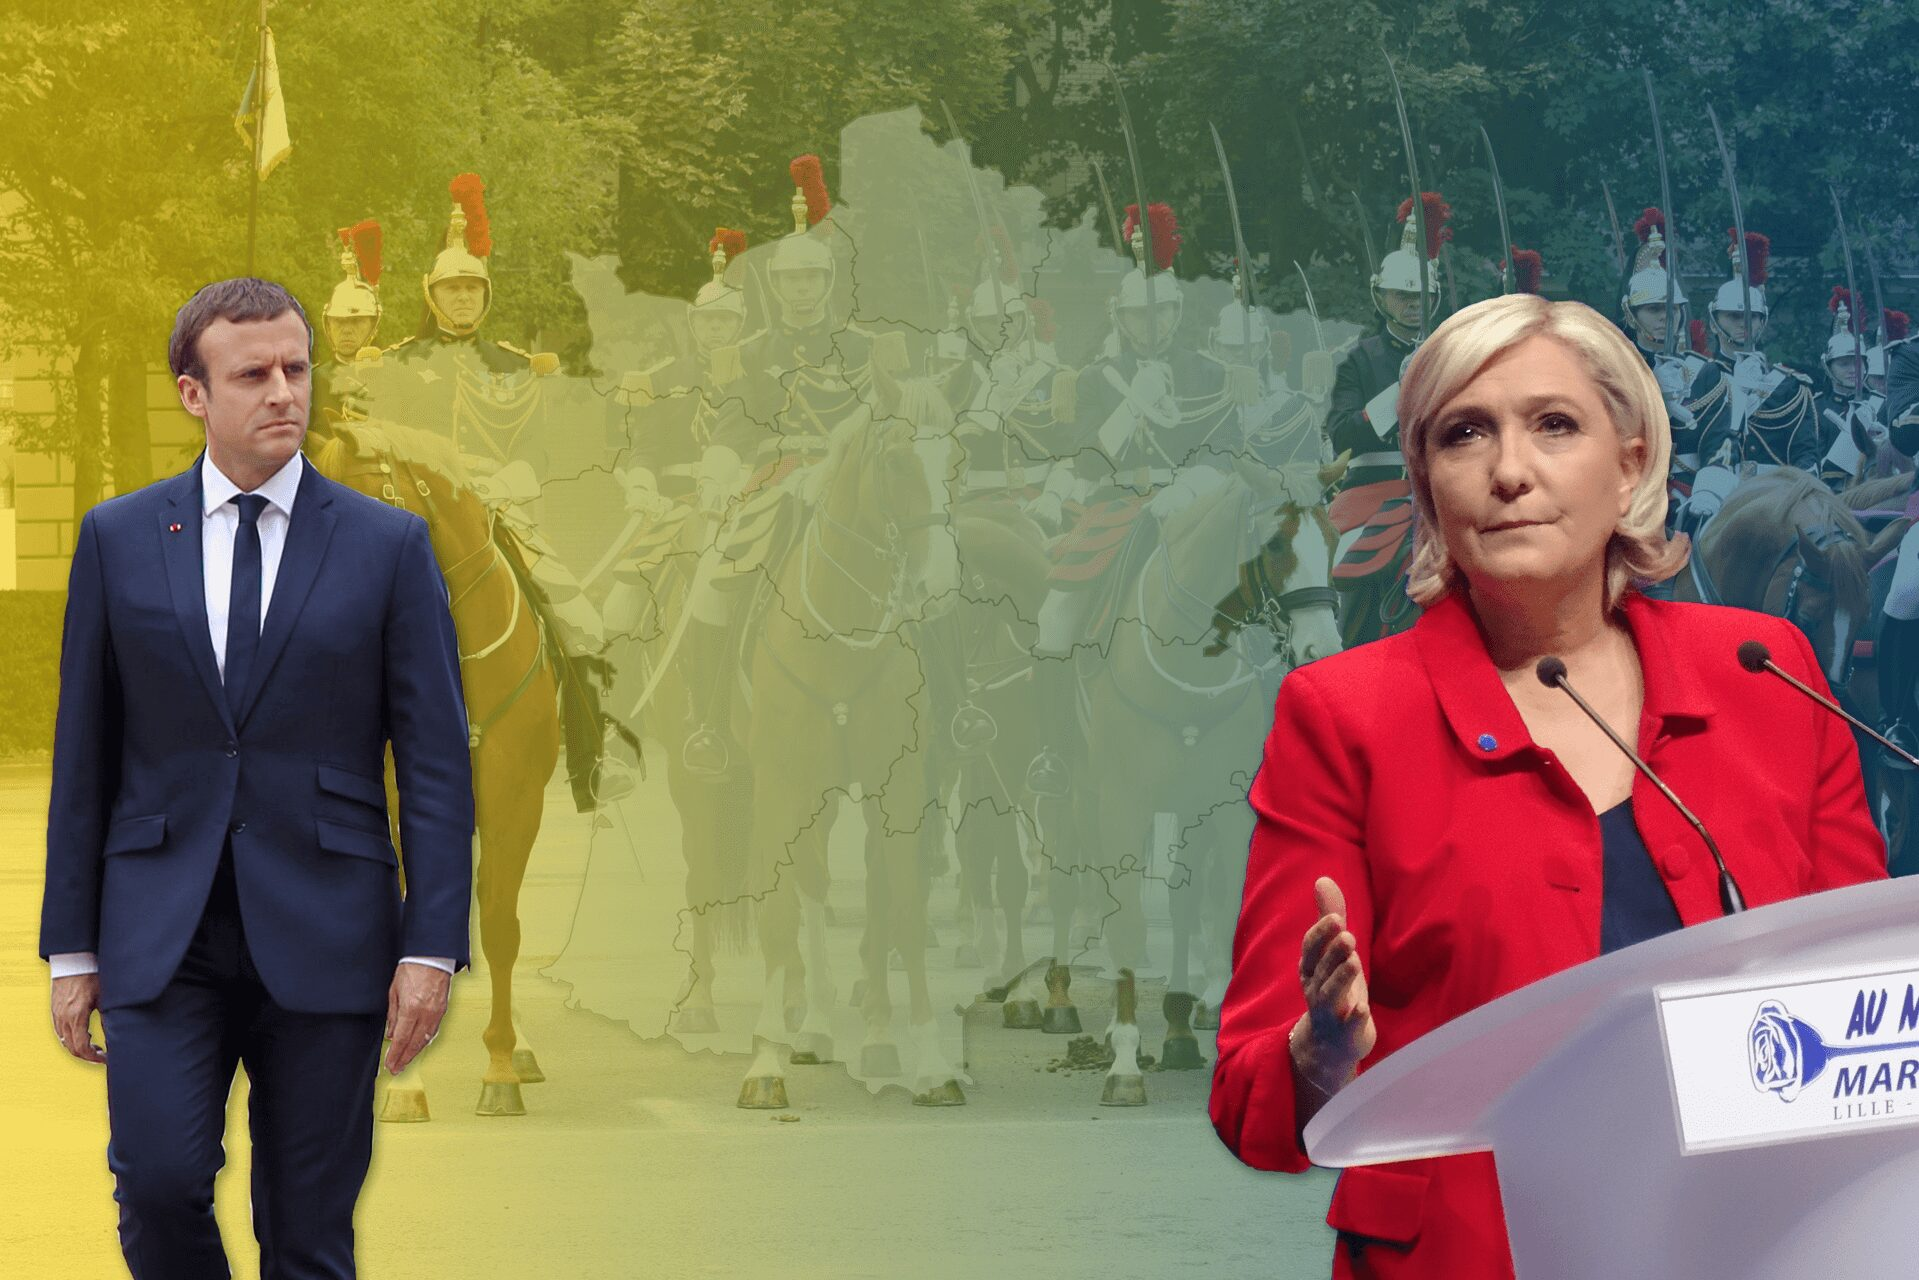 When the military joins the far right: Macron's challenges ahead of the 2022 election